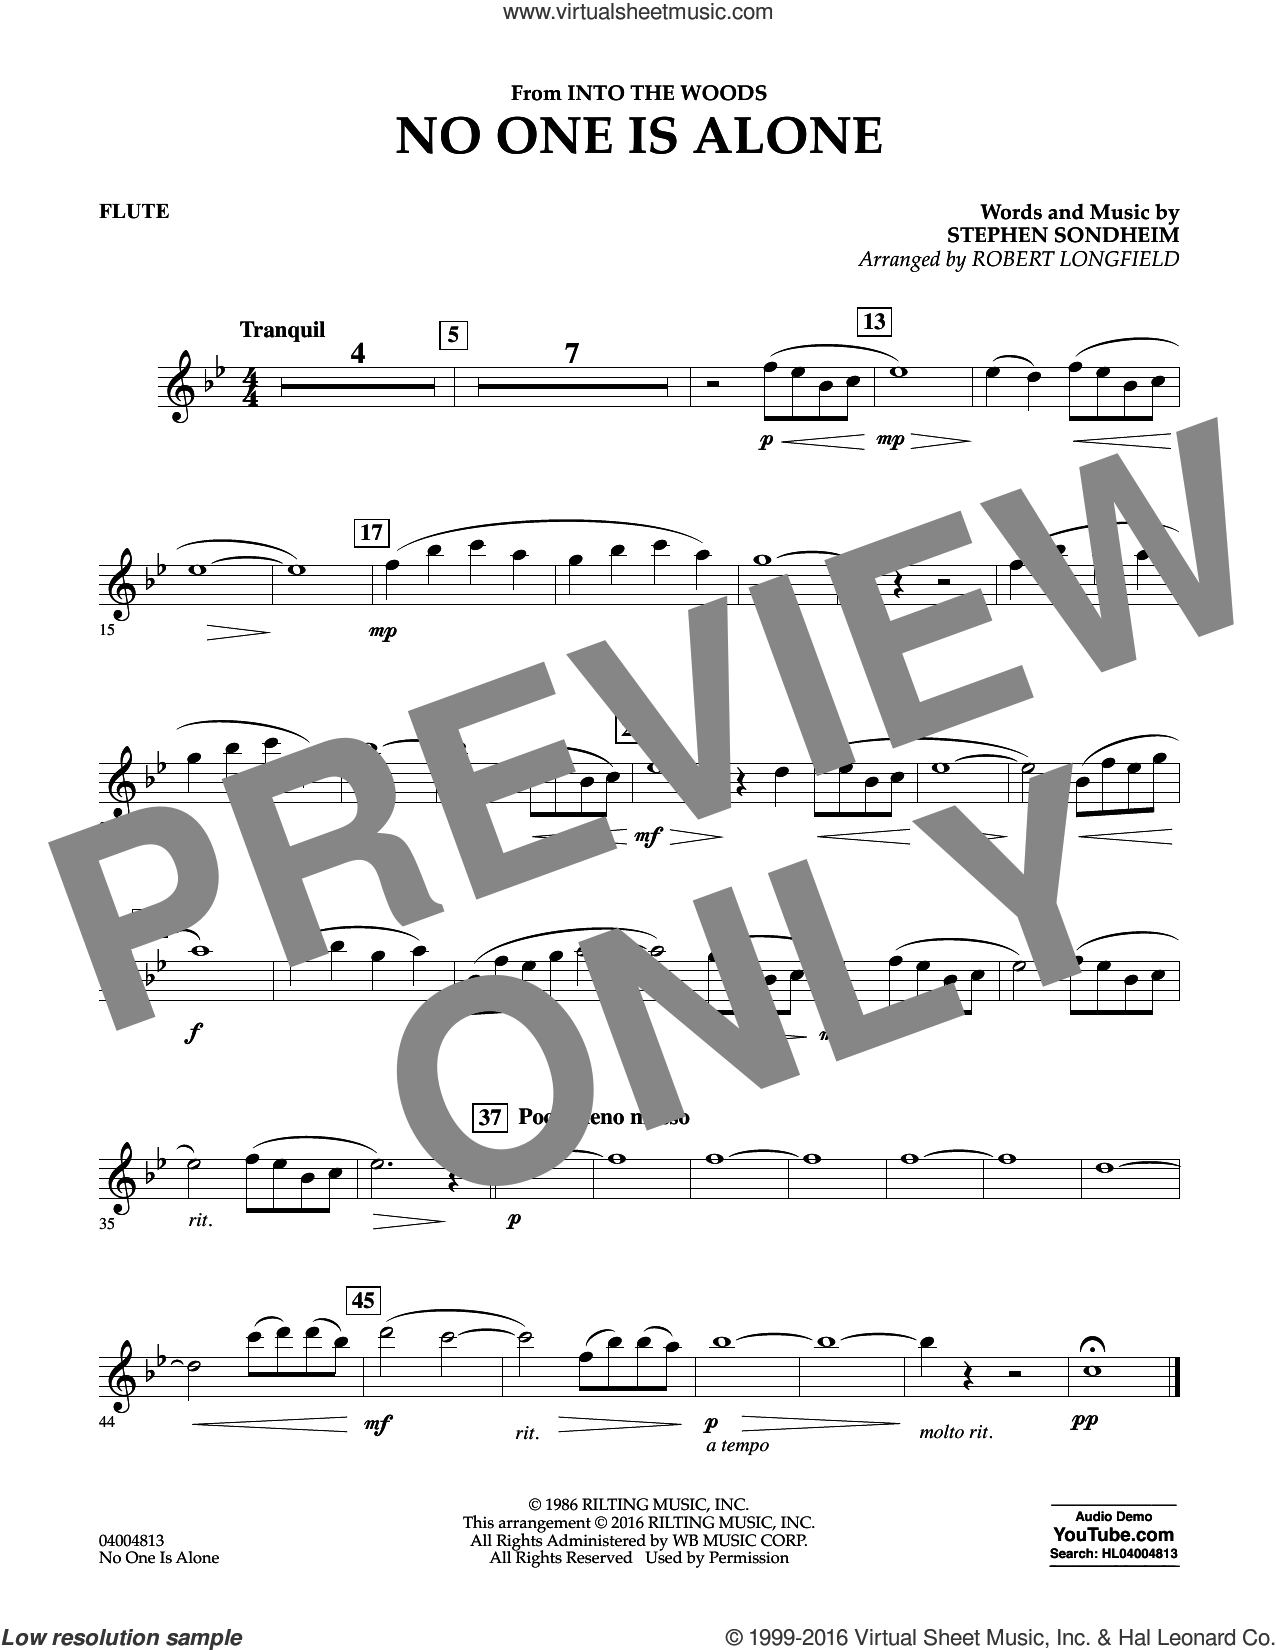 No One Is Alone sheet music for concert band (flute) by Stephen Sondheim and Robert Longfield, intermediate skill level